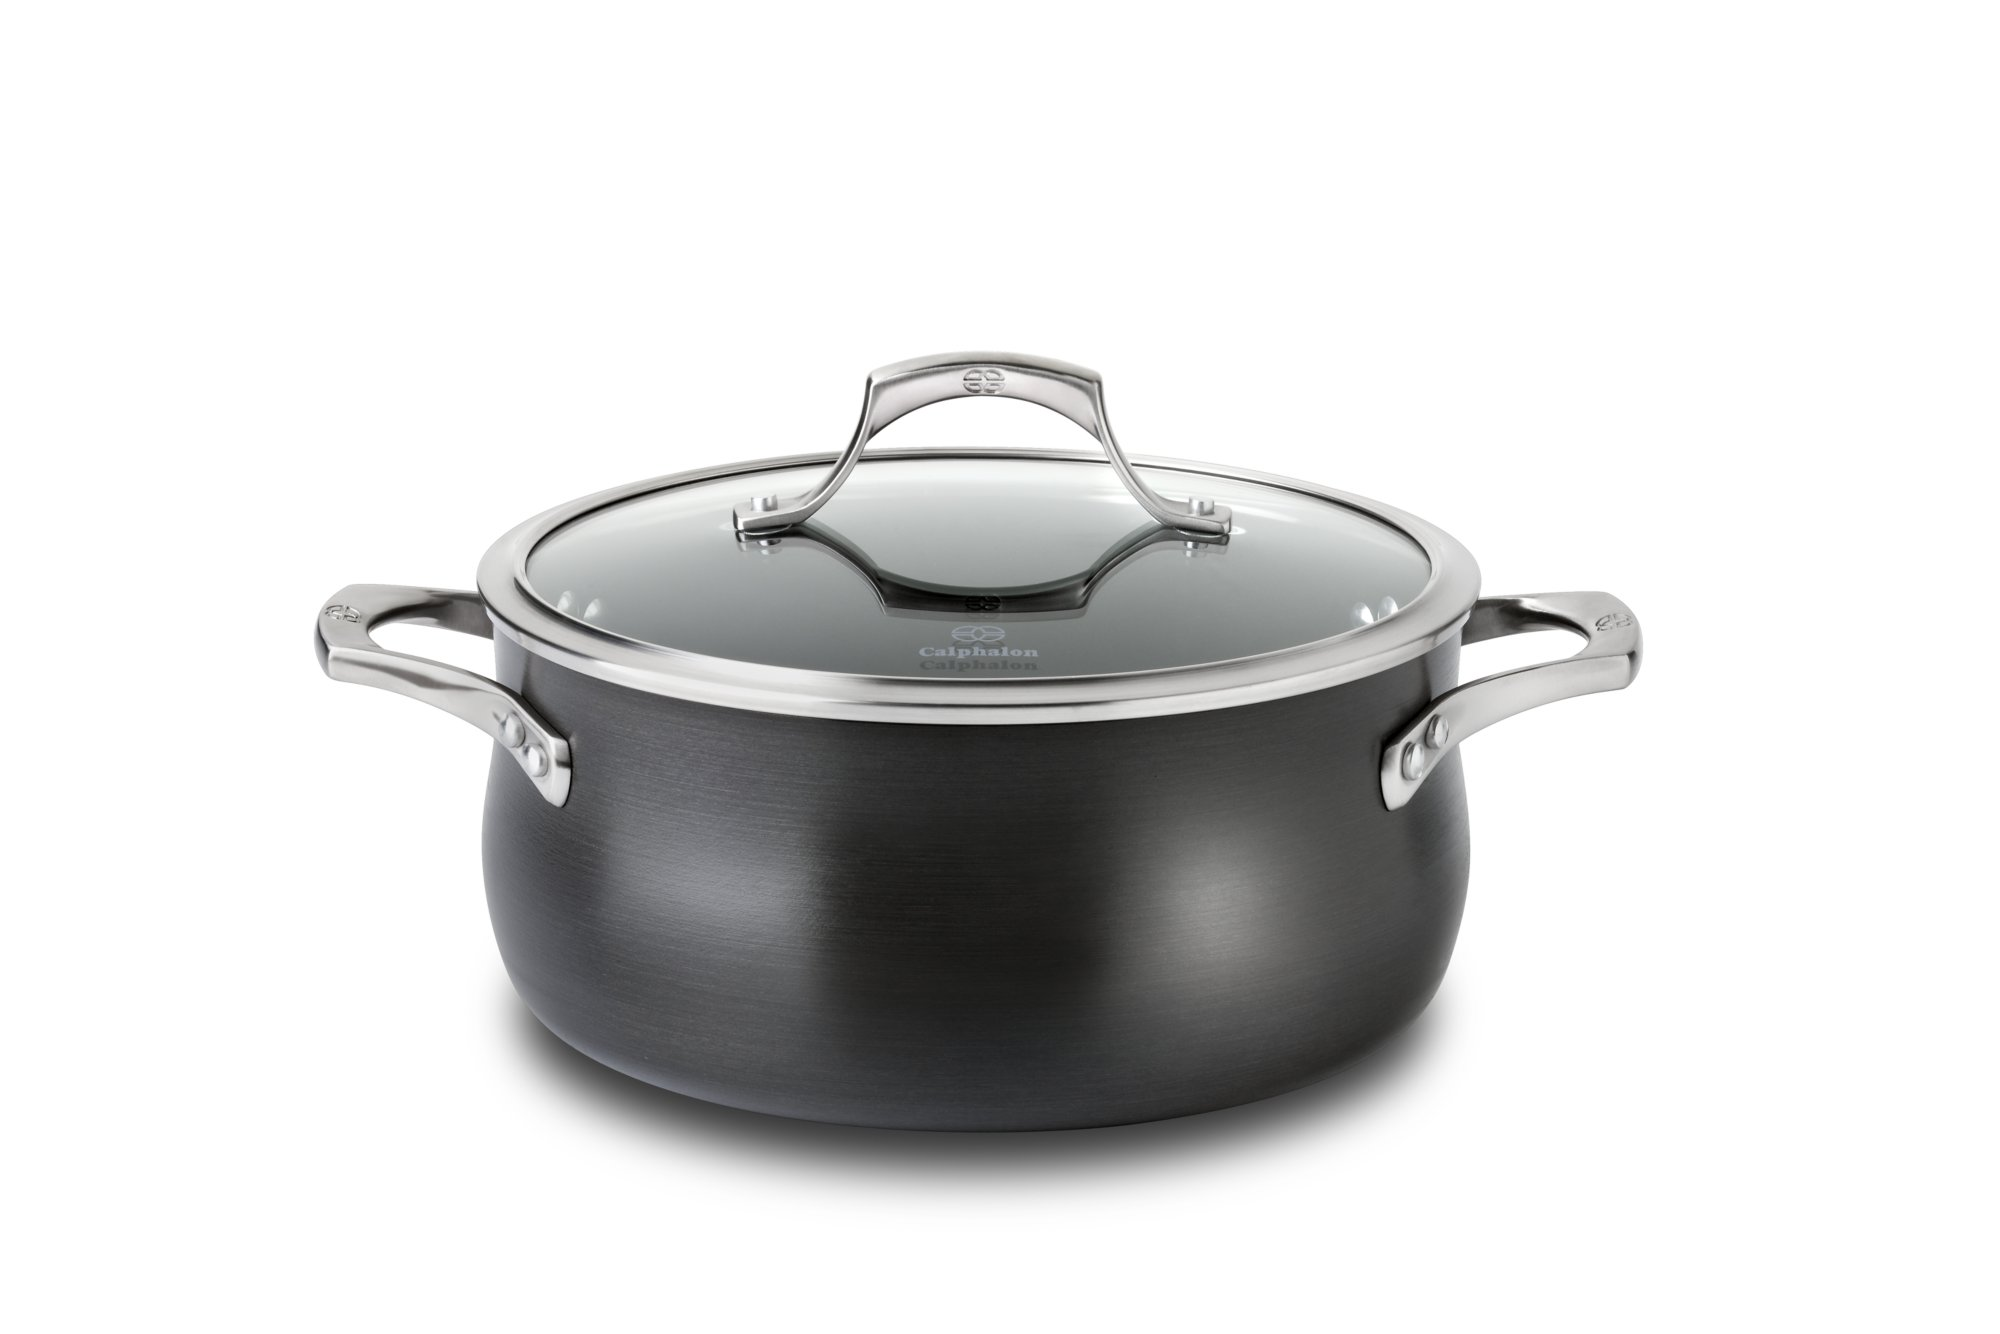 Calphalon Unison Nonstick 5-qt. Dutch Oven with Cover